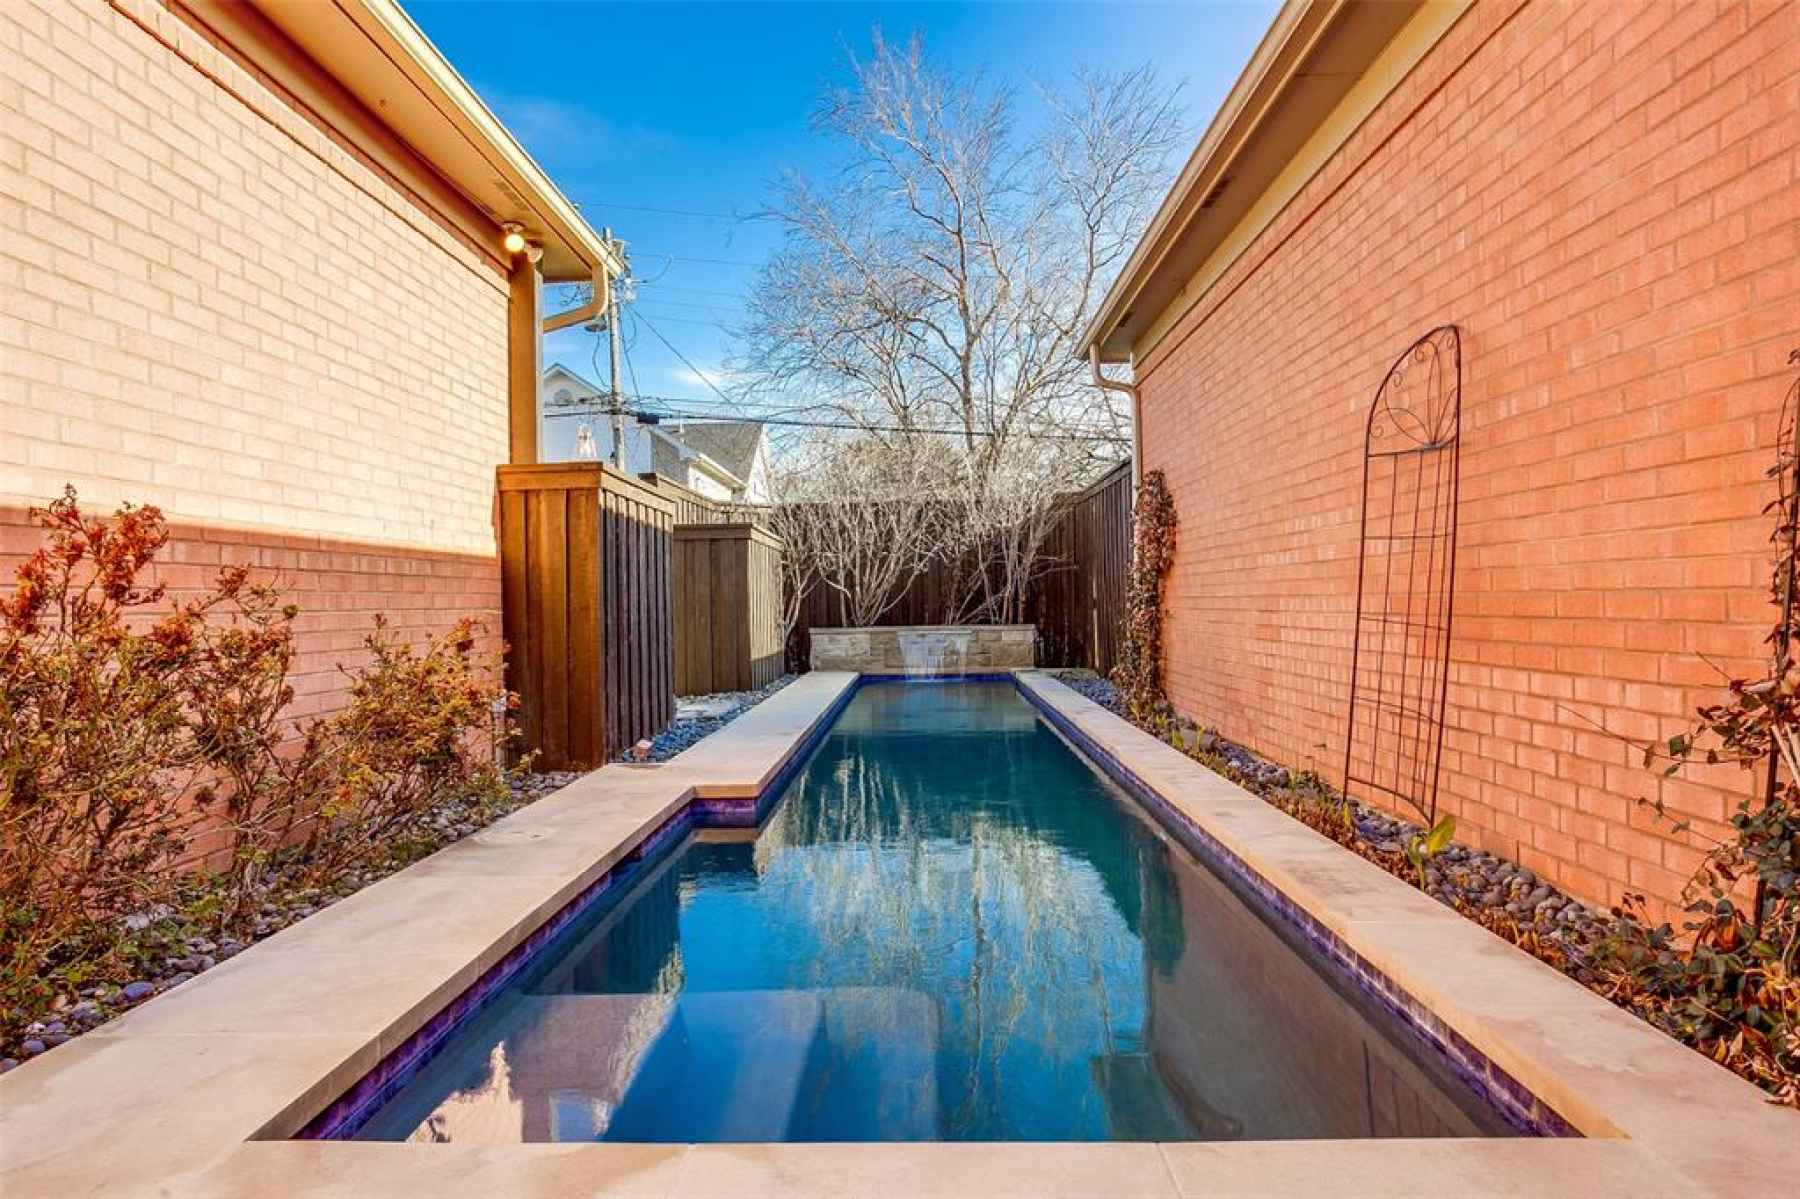 Pool access from main unit 3524 N Versailles.